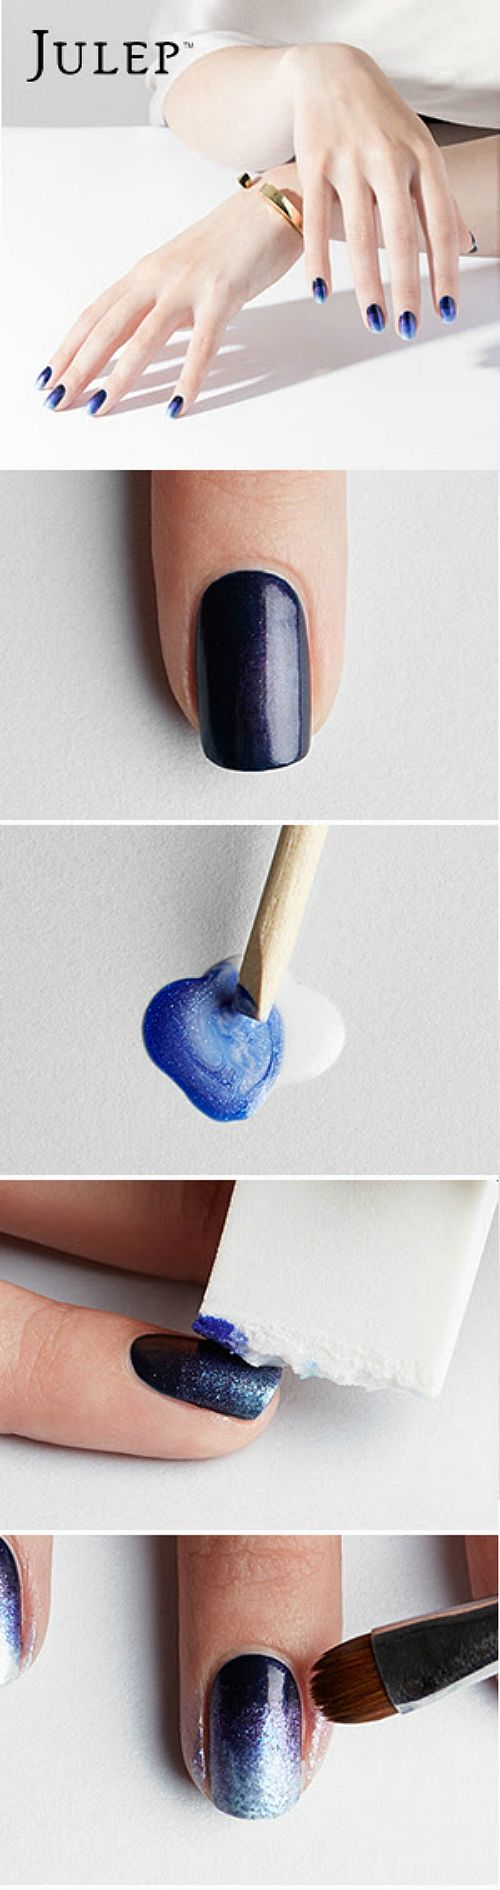 Learn nail art at home free home art learn nail art at home free prinsesfo Image collections